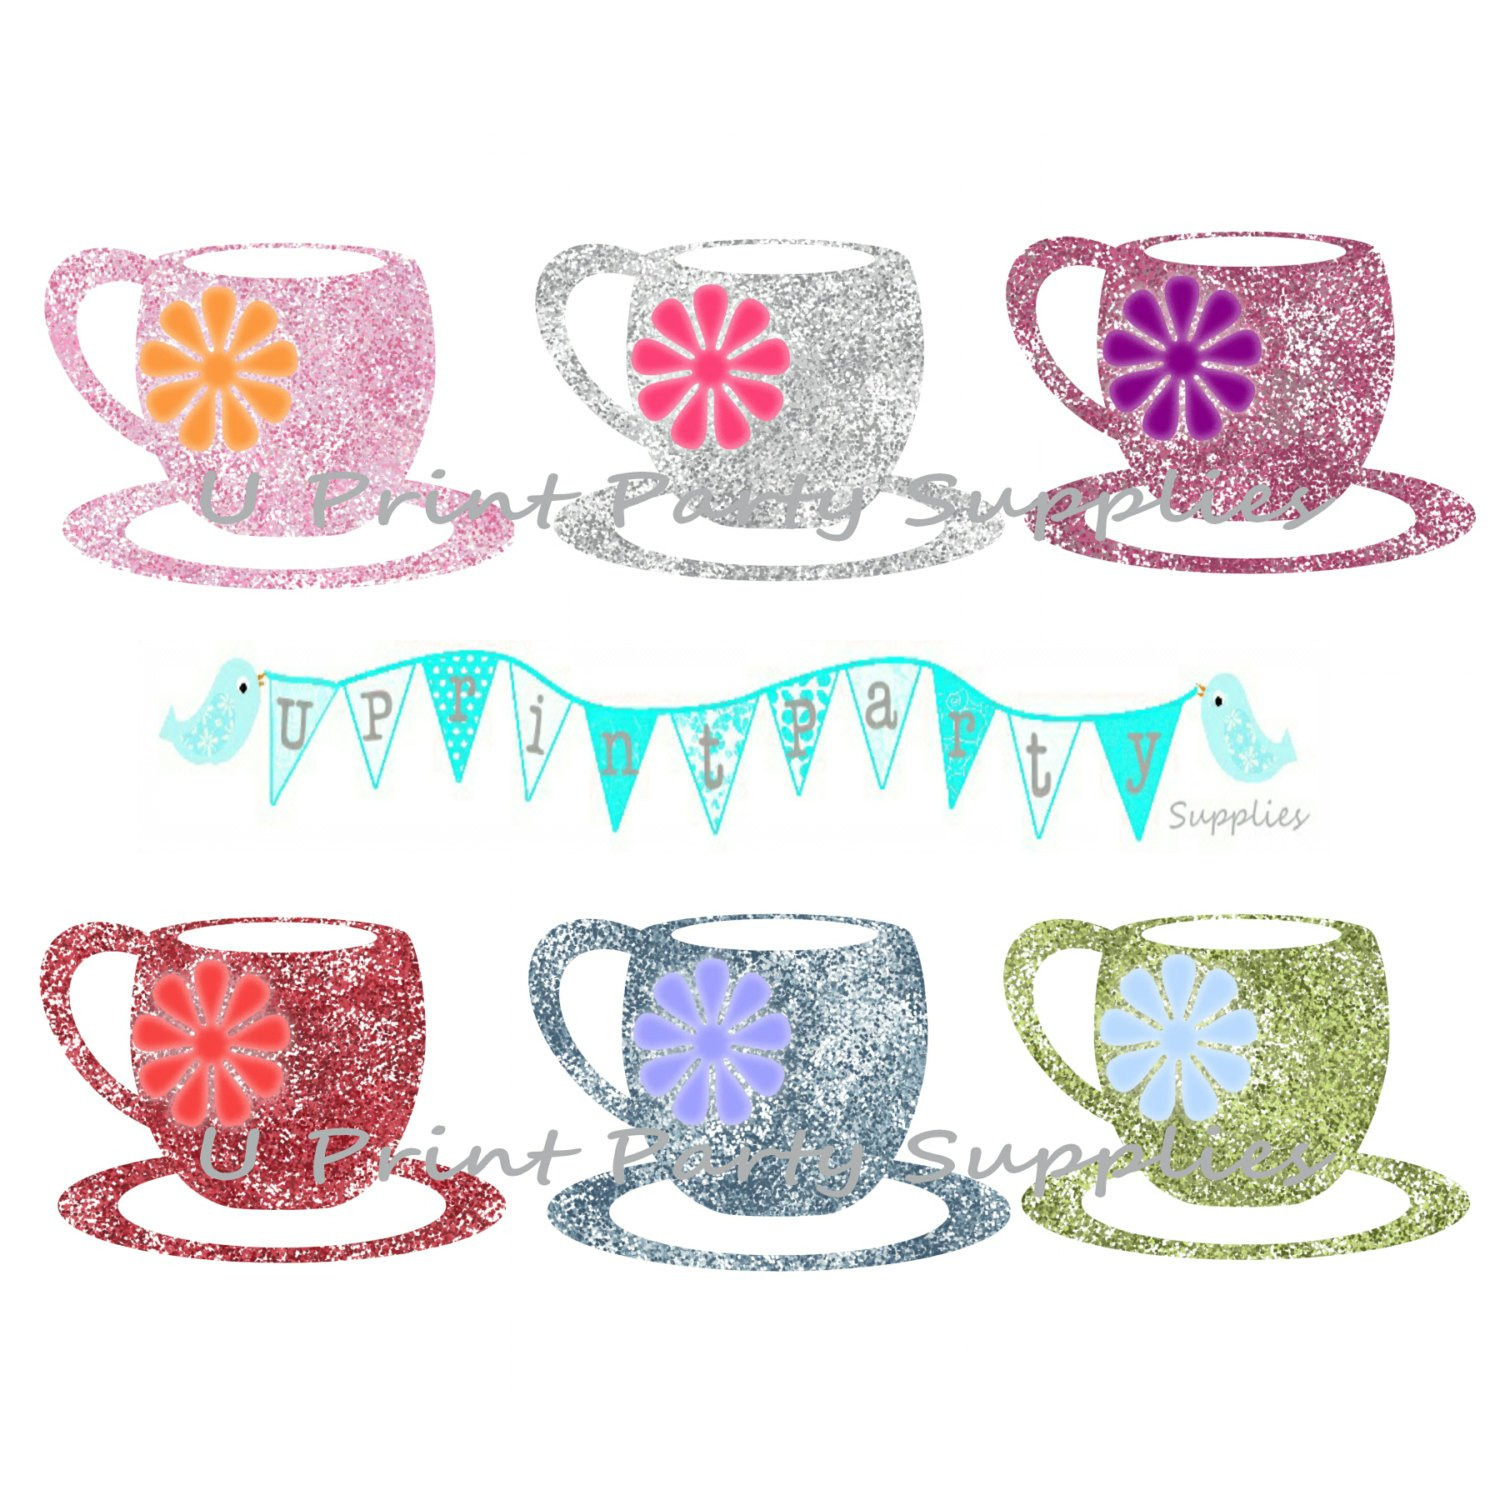 High tea images clipart jpg library library Free high tea clipart 9 » Clipart Portal jpg library library